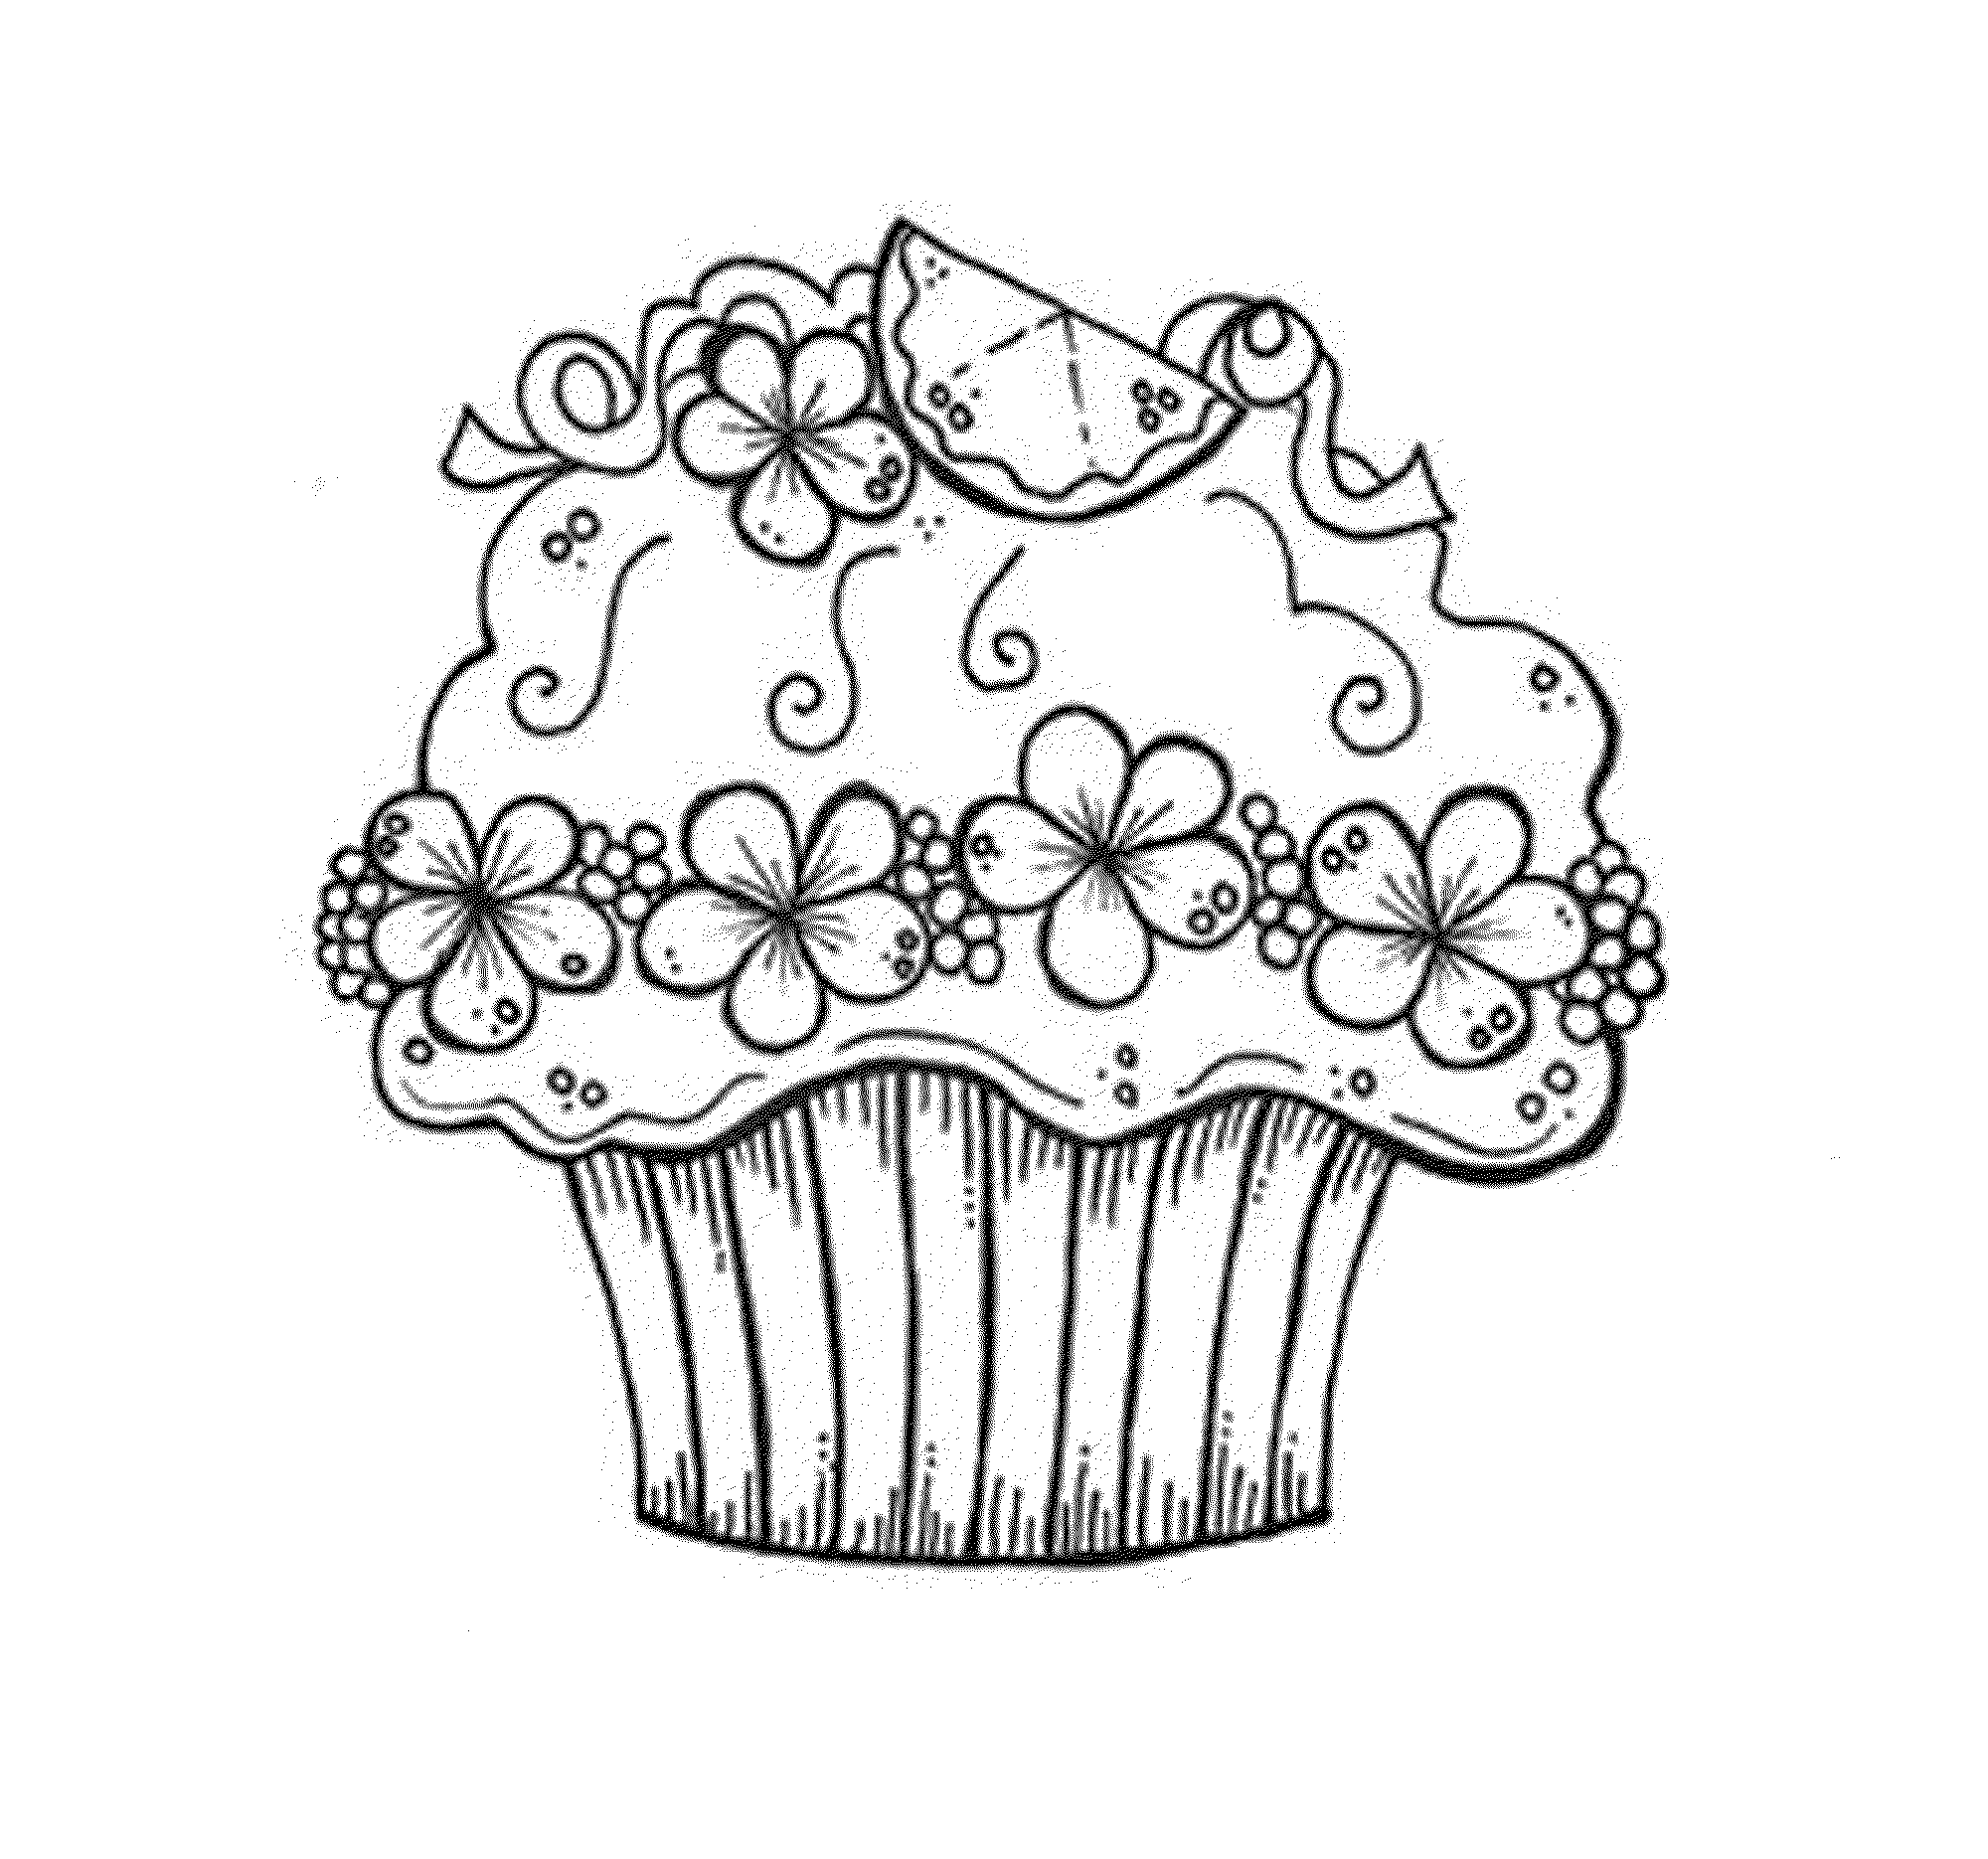 cup cake coloring pictures free printable cupcake coloring pages for kids cool2bkids cup pictures coloring cake